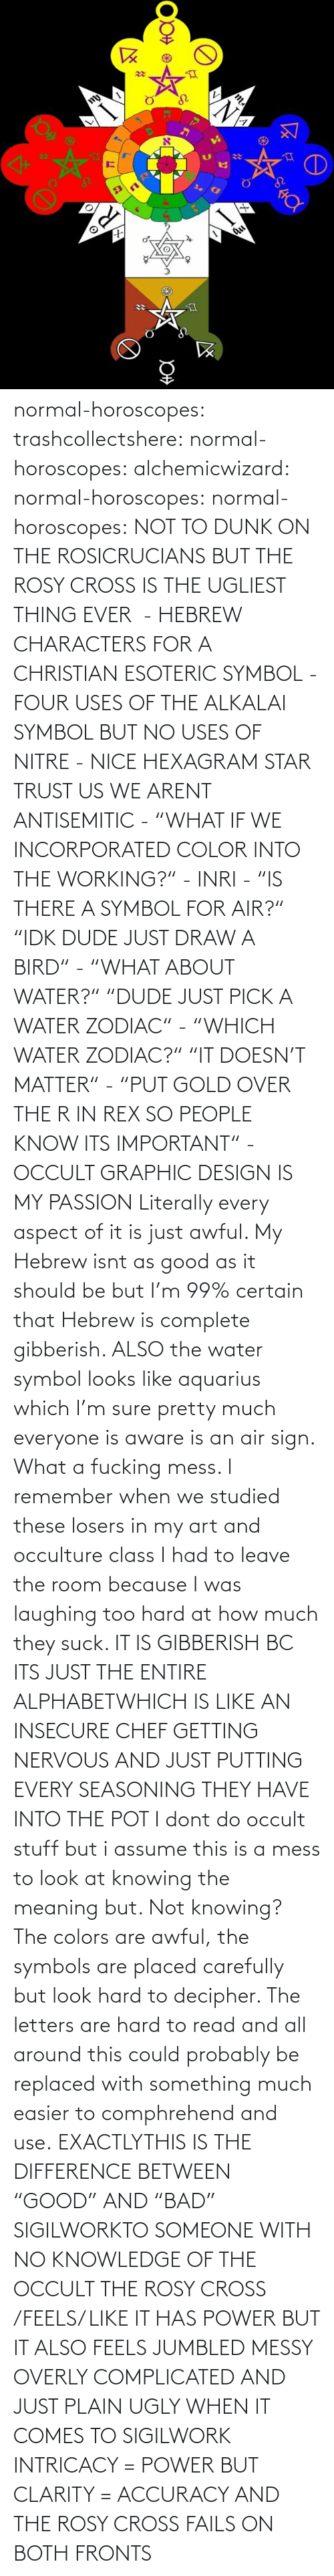 "Isnt: normal-horoscopes:  trashcollectshere: normal-horoscopes:   alchemicwizard:  normal-horoscopes:  normal-horoscopes: NOT TO DUNK ON THE ROSICRUCIANS BUT THE ROSY CROSS IS THE UGLIEST THING EVER  - HEBREW CHARACTERS FOR A CHRISTIAN ESOTERIC SYMBOL - FOUR USES OF THE ALKALAI SYMBOL BUT NO USES OF NITRE - NICE HEXAGRAM STAR TRUST US WE ARENT ANTISEMITIC - ""WHAT IF WE INCORPORATED COLOR INTO THE WORKING?"" - INRI - ""IS THERE A SYMBOL FOR AIR?"" ""IDK DUDE JUST DRAW A BIRD"" - ""WHAT ABOUT WATER?"" ""DUDE JUST PICK A WATER ZODIAC"" - ""WHICH WATER ZODIAC?"" ""IT DOESN'T MATTER"" - ""PUT GOLD OVER THE R IN REX SO PEOPLE KNOW ITS IMPORTANT"" - OCCULT GRAPHIC DESIGN IS MY PASSION  Literally every aspect of it is just awful. My Hebrew isnt as good as it should be but I'm 99% certain that Hebrew is complete gibberish.  ALSO the water symbol looks like aquarius which I'm sure pretty much everyone is aware is an air sign. What a fucking mess.  I remember when we studied these losers in my art and occulture class I had to leave the room because I was laughing too hard at how much they suck.   IT IS GIBBERISH BC ITS JUST THE ENTIRE ALPHABETWHICH IS LIKE AN INSECURE CHEF GETTING NERVOUS AND JUST PUTTING EVERY SEASONING THEY HAVE INTO THE POT     I dont do occult stuff but i assume this is a mess to look at knowing the meaning but. Not knowing? The colors are awful, the symbols are placed carefully but look hard to decipher. The letters are hard to read and all around this could probably be replaced with something much easier to comphrehend and use.  EXACTLYTHIS IS THE DIFFERENCE BETWEEN ""GOOD"" AND ""BAD"" SIGILWORKTO SOMEONE WITH NO KNOWLEDGE OF THE OCCULT THE ROSY CROSS /FEELS/ LIKE IT HAS POWER BUT IT ALSO FEELS JUMBLED MESSY OVERLY COMPLICATED AND JUST PLAIN UGLY WHEN IT COMES TO SIGILWORK INTRICACY = POWER BUT CLARITY = ACCURACY AND THE ROSY CROSS FAILS ON BOTH FRONTS"